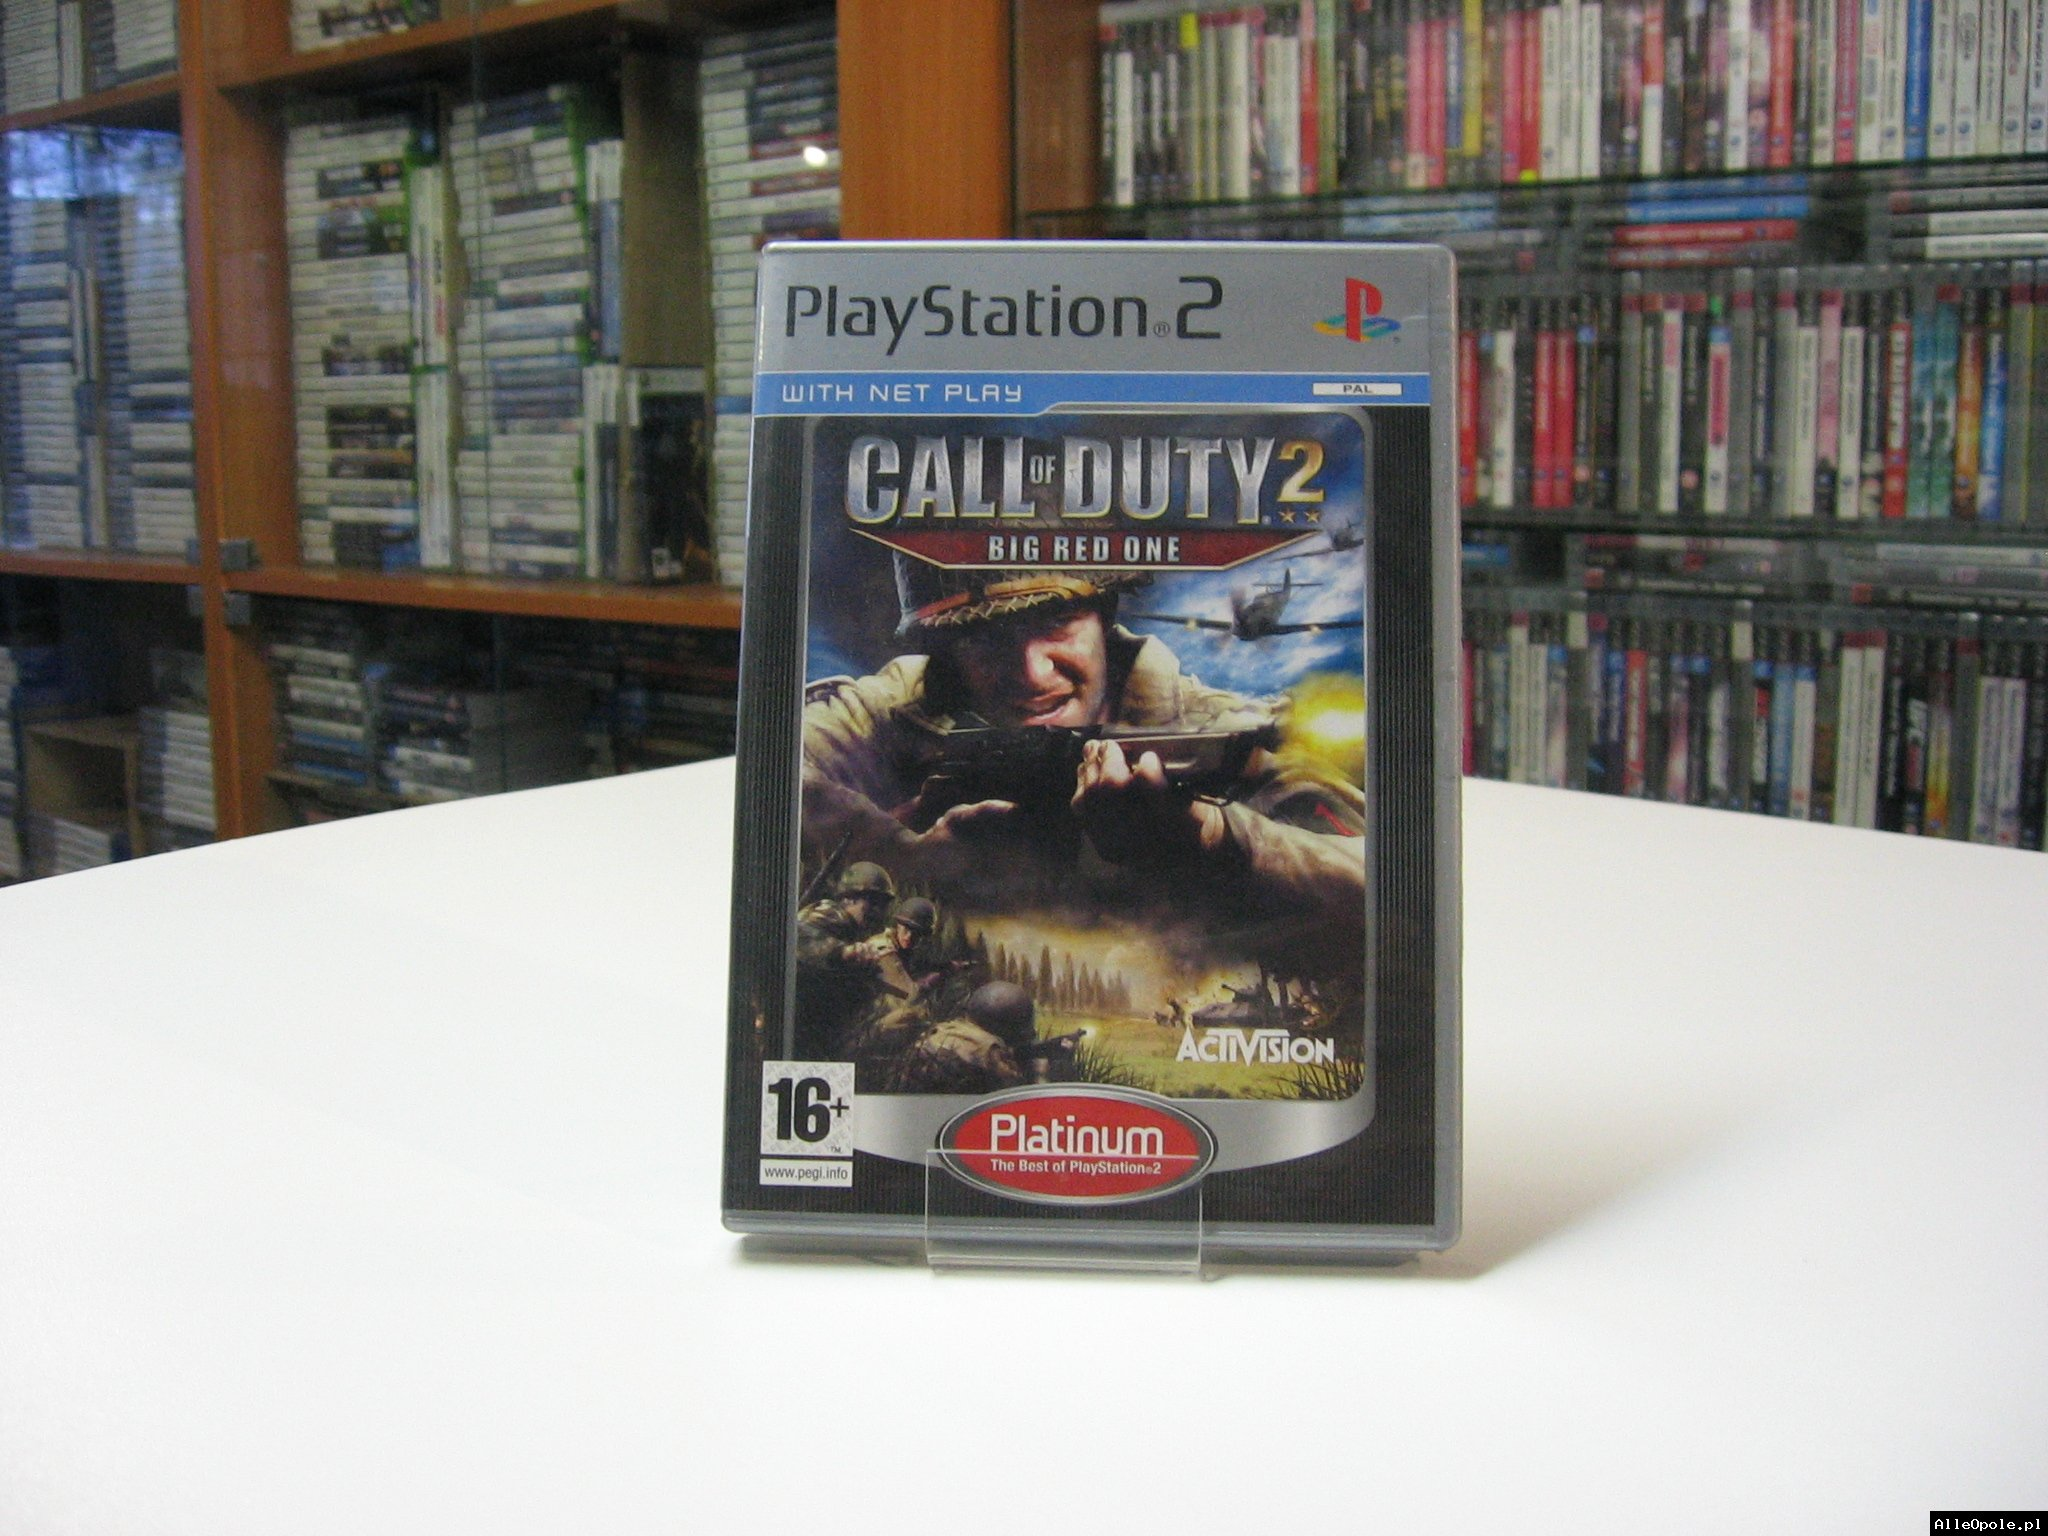 Call of Duty 2: Big Red One - GRA Ps2 - Opole 0595